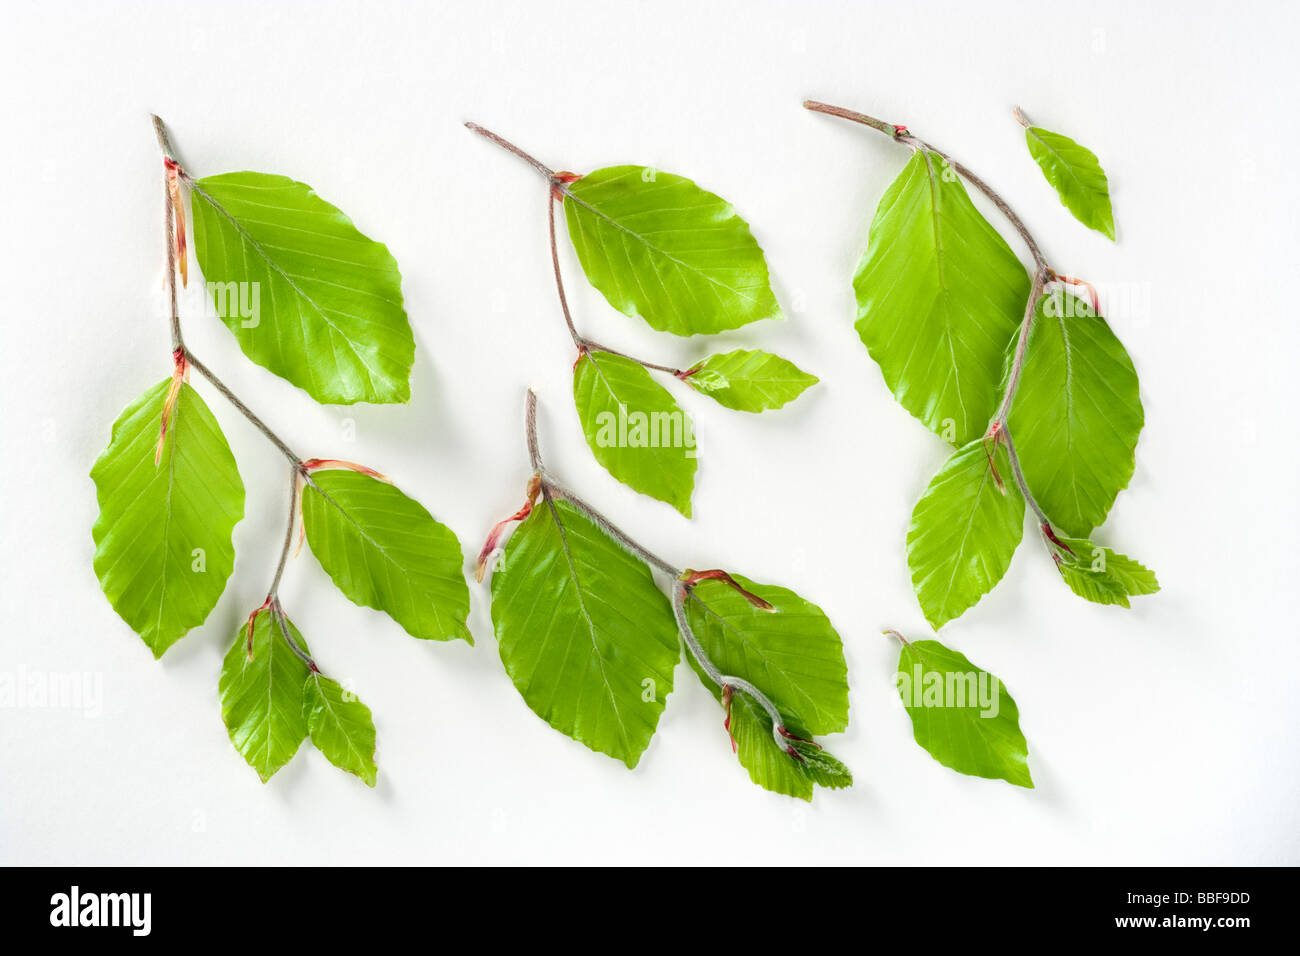 Fresh spring beech leaves, Fagus sylvatica. - Stock Image